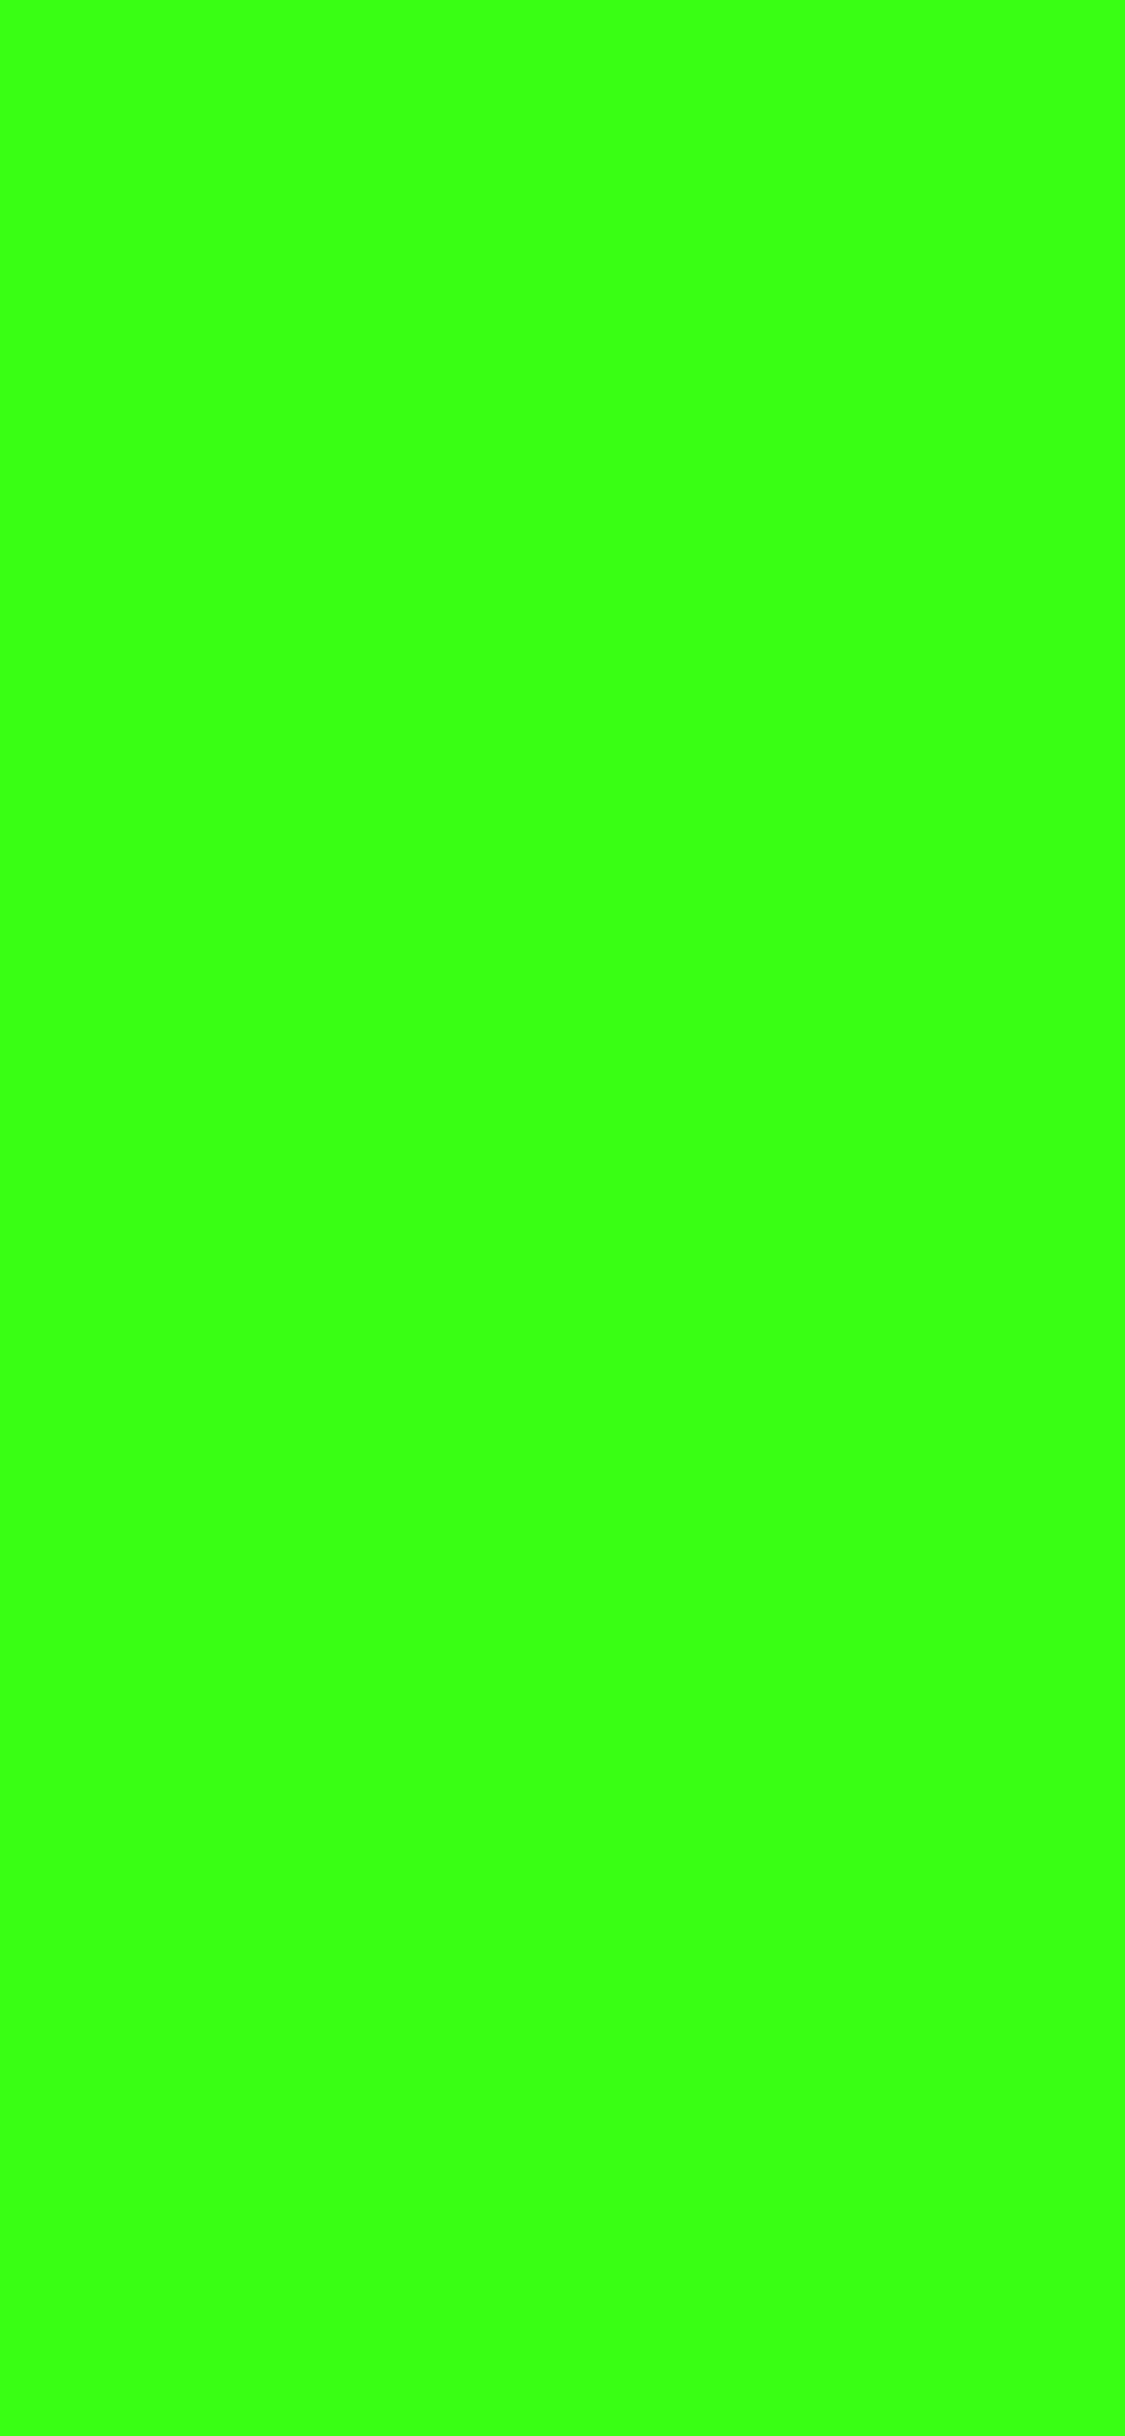 1125x2436 Neon Green Solid Color Background